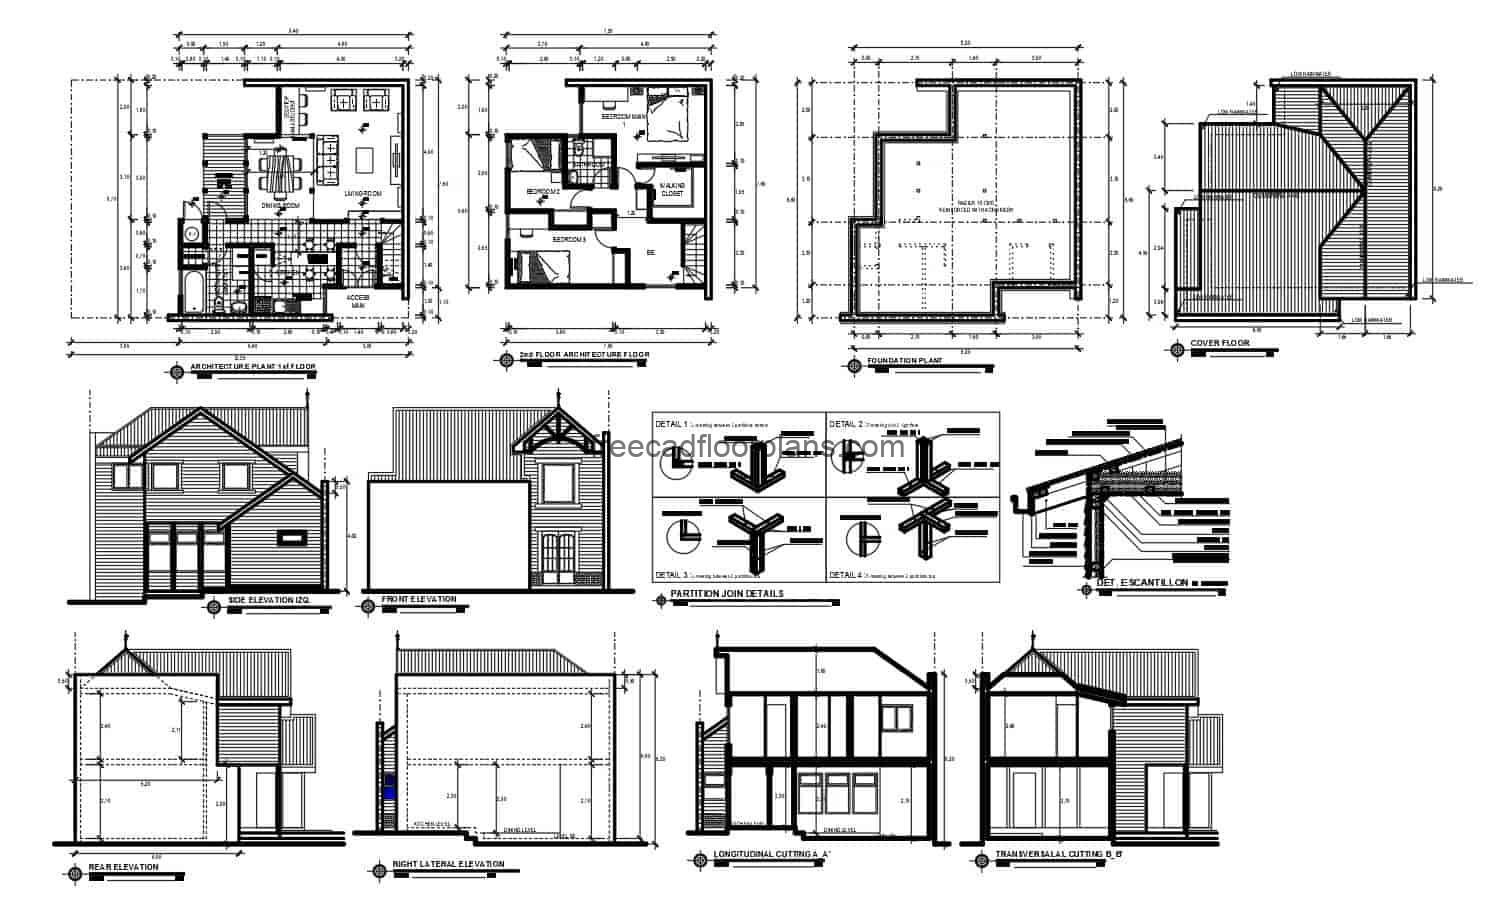 Architectural plans of complete project of farm house of two levels with design of inclined roofs to several waters, social areas in the first level with living room, dining room, kitchen, area of laundry and bath, terrace, second level has three rooms with shared bath. 2D plans in Autocad DWG format for free download with interior blocks and furniture edits